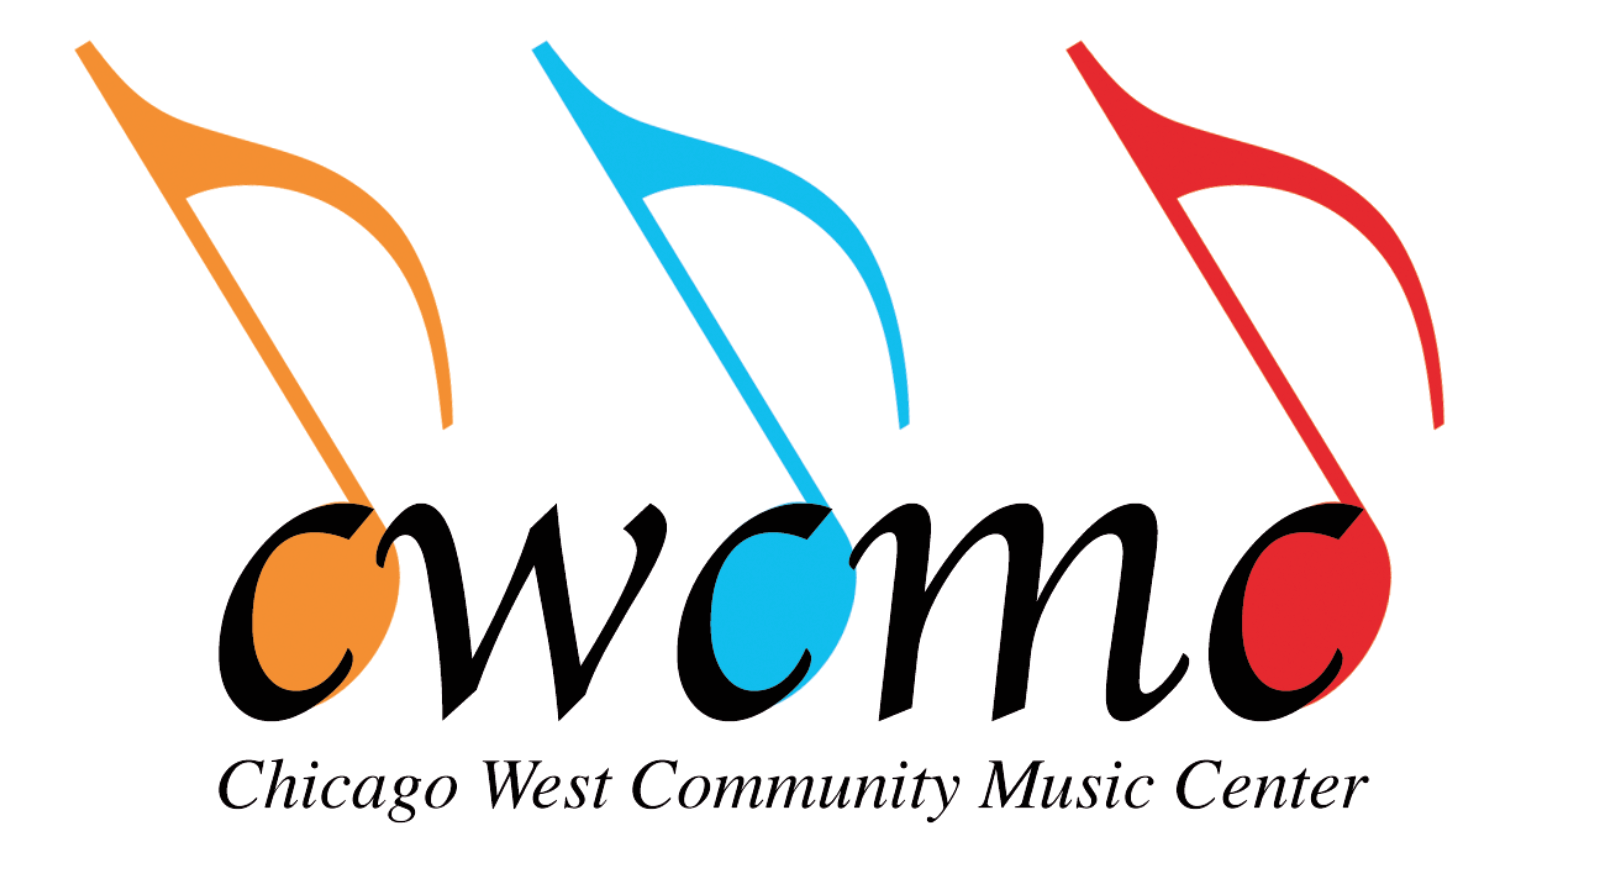 http://www.cwcmc.org/